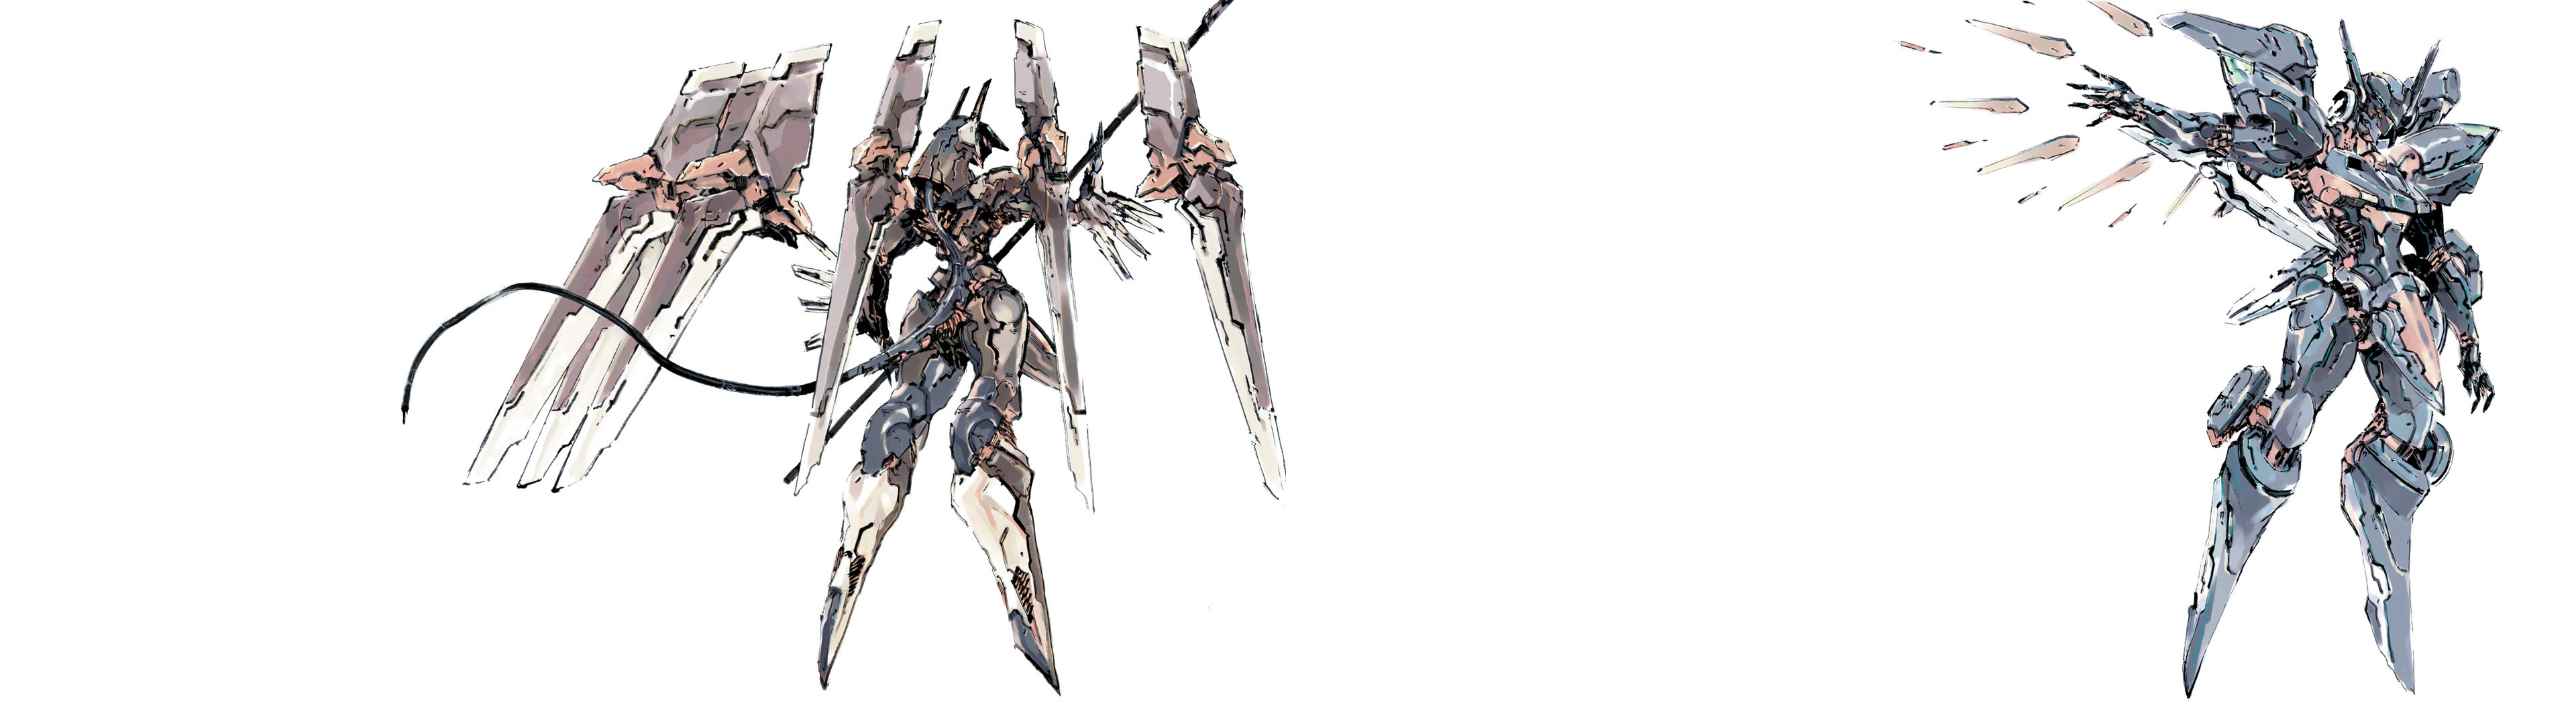 3840x1080 Zone of the Enders dual monitor wallpaper [] ...